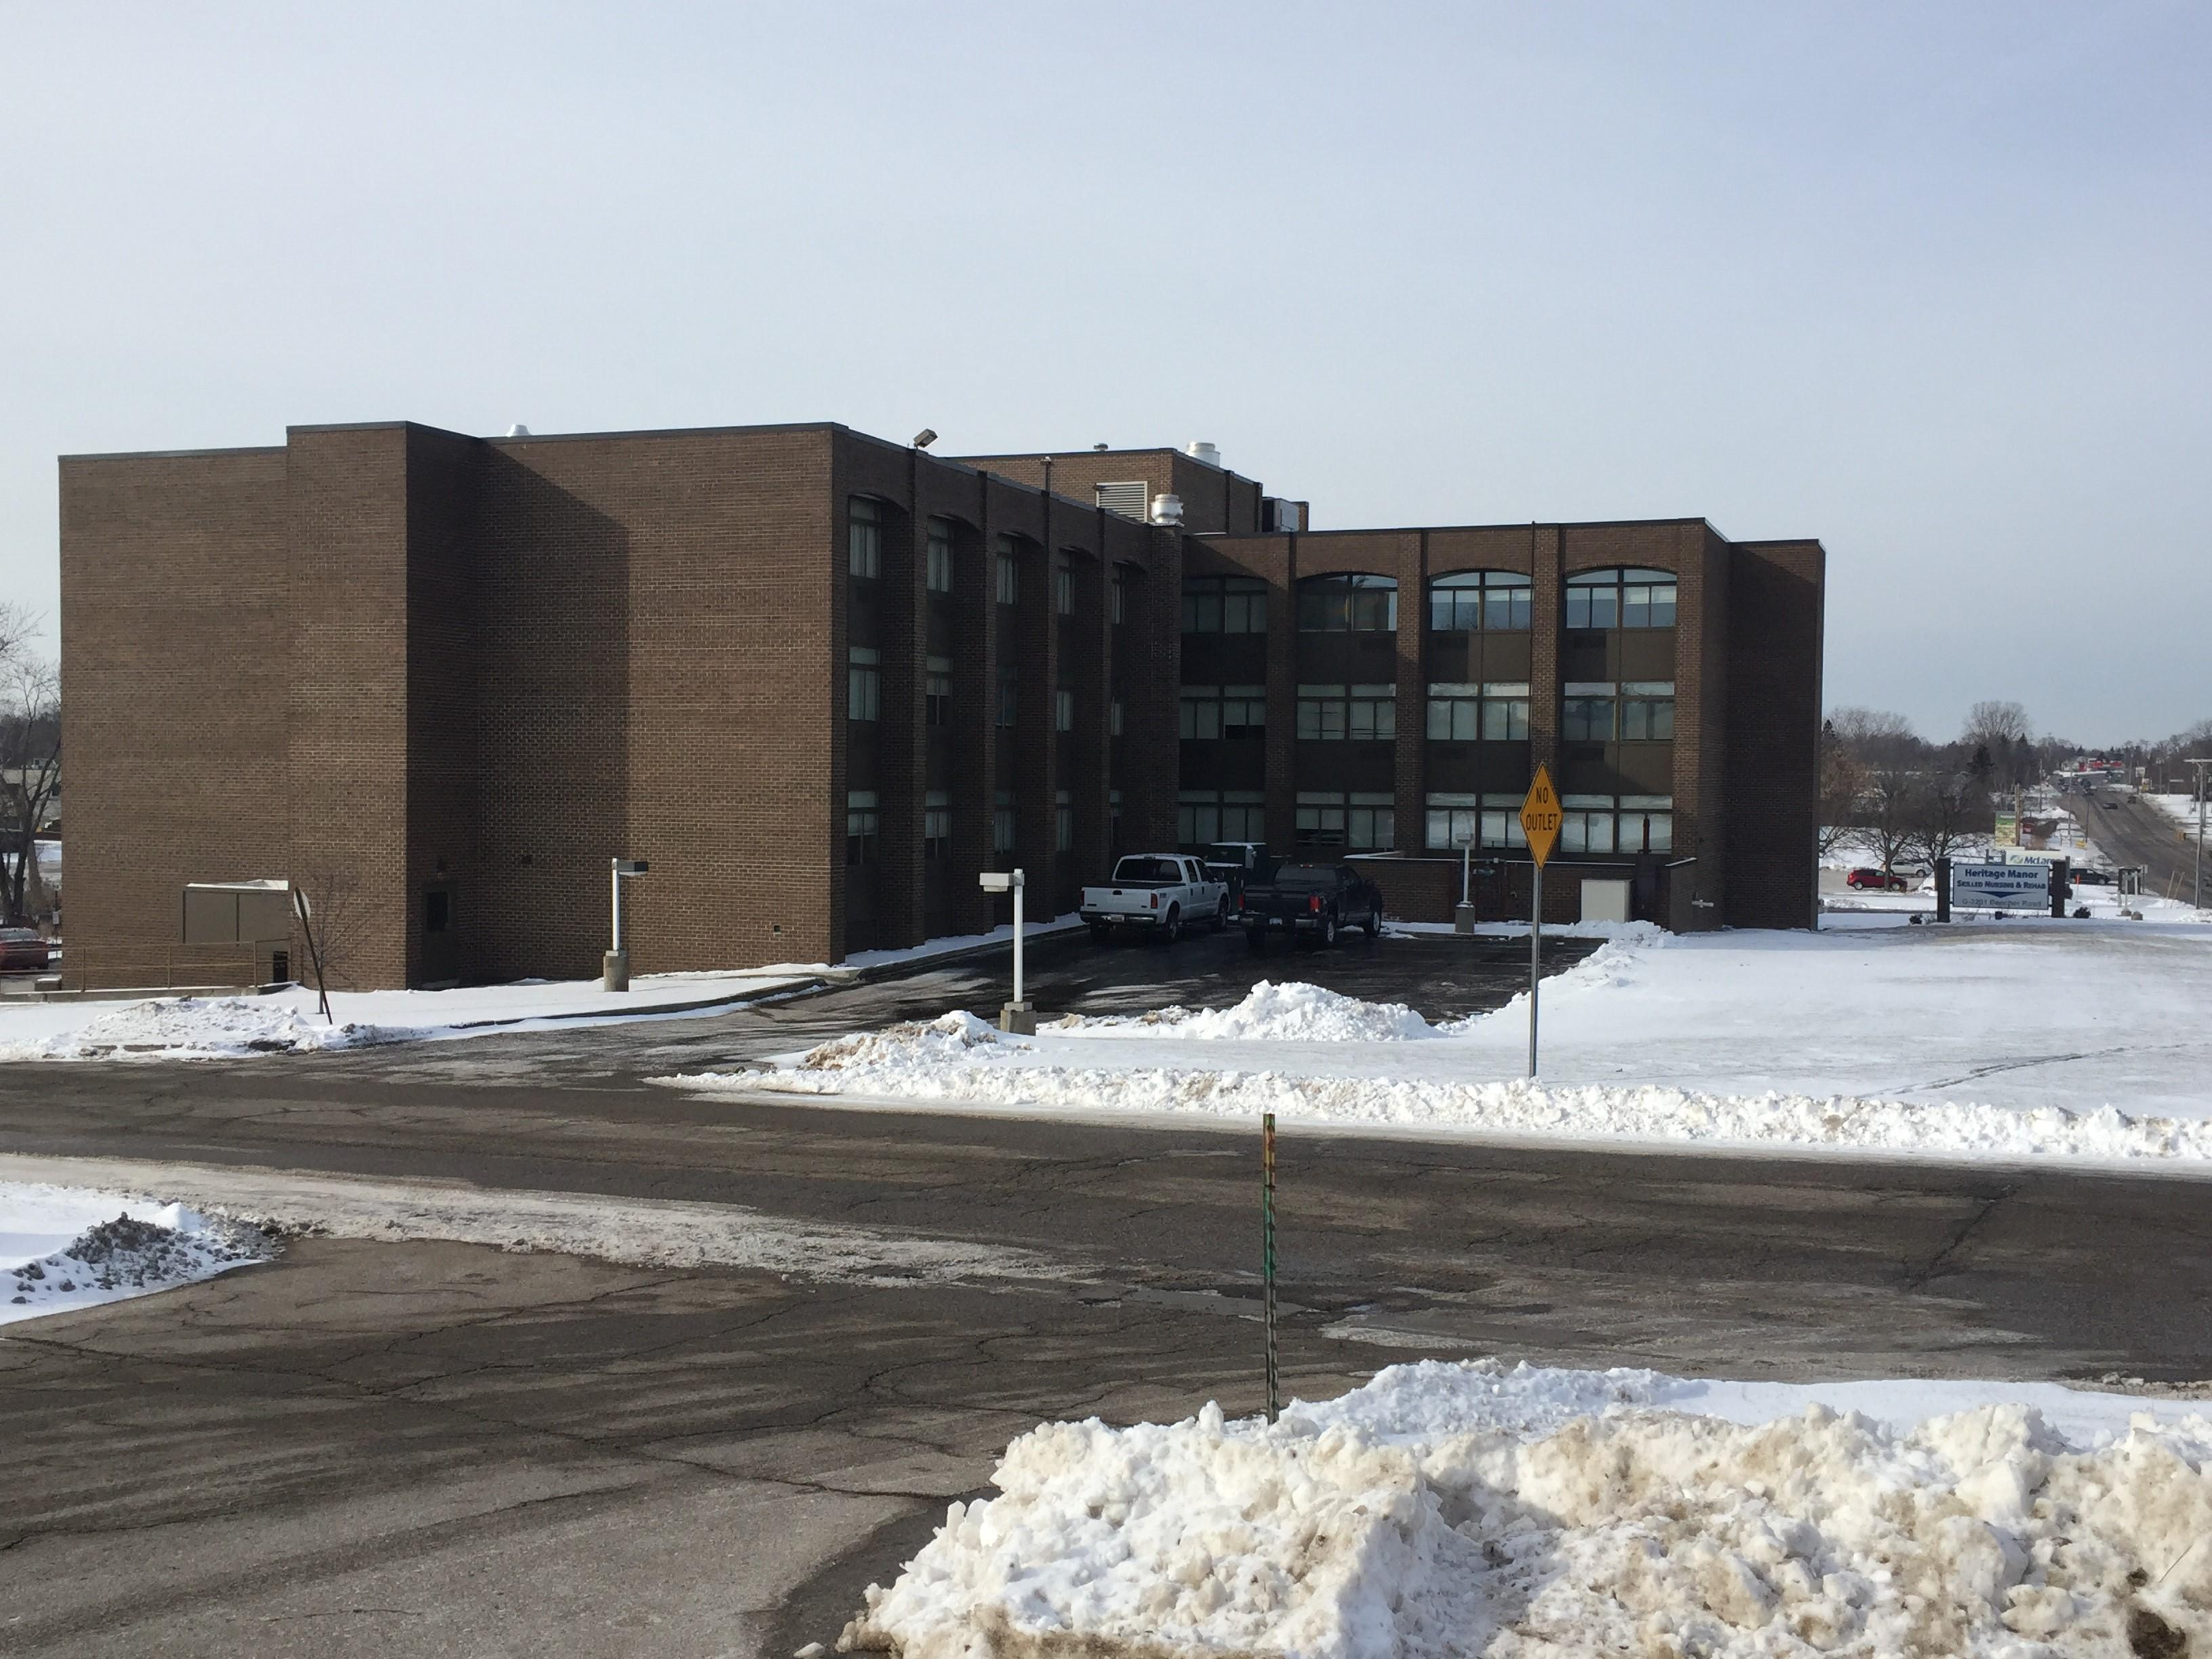 Genesee County Health Department confirms they are currently investigating one case of Legionella disease at the Heritage Manor Healthcare Center on Beecher Road in Flint. (WEYI/WSMH)